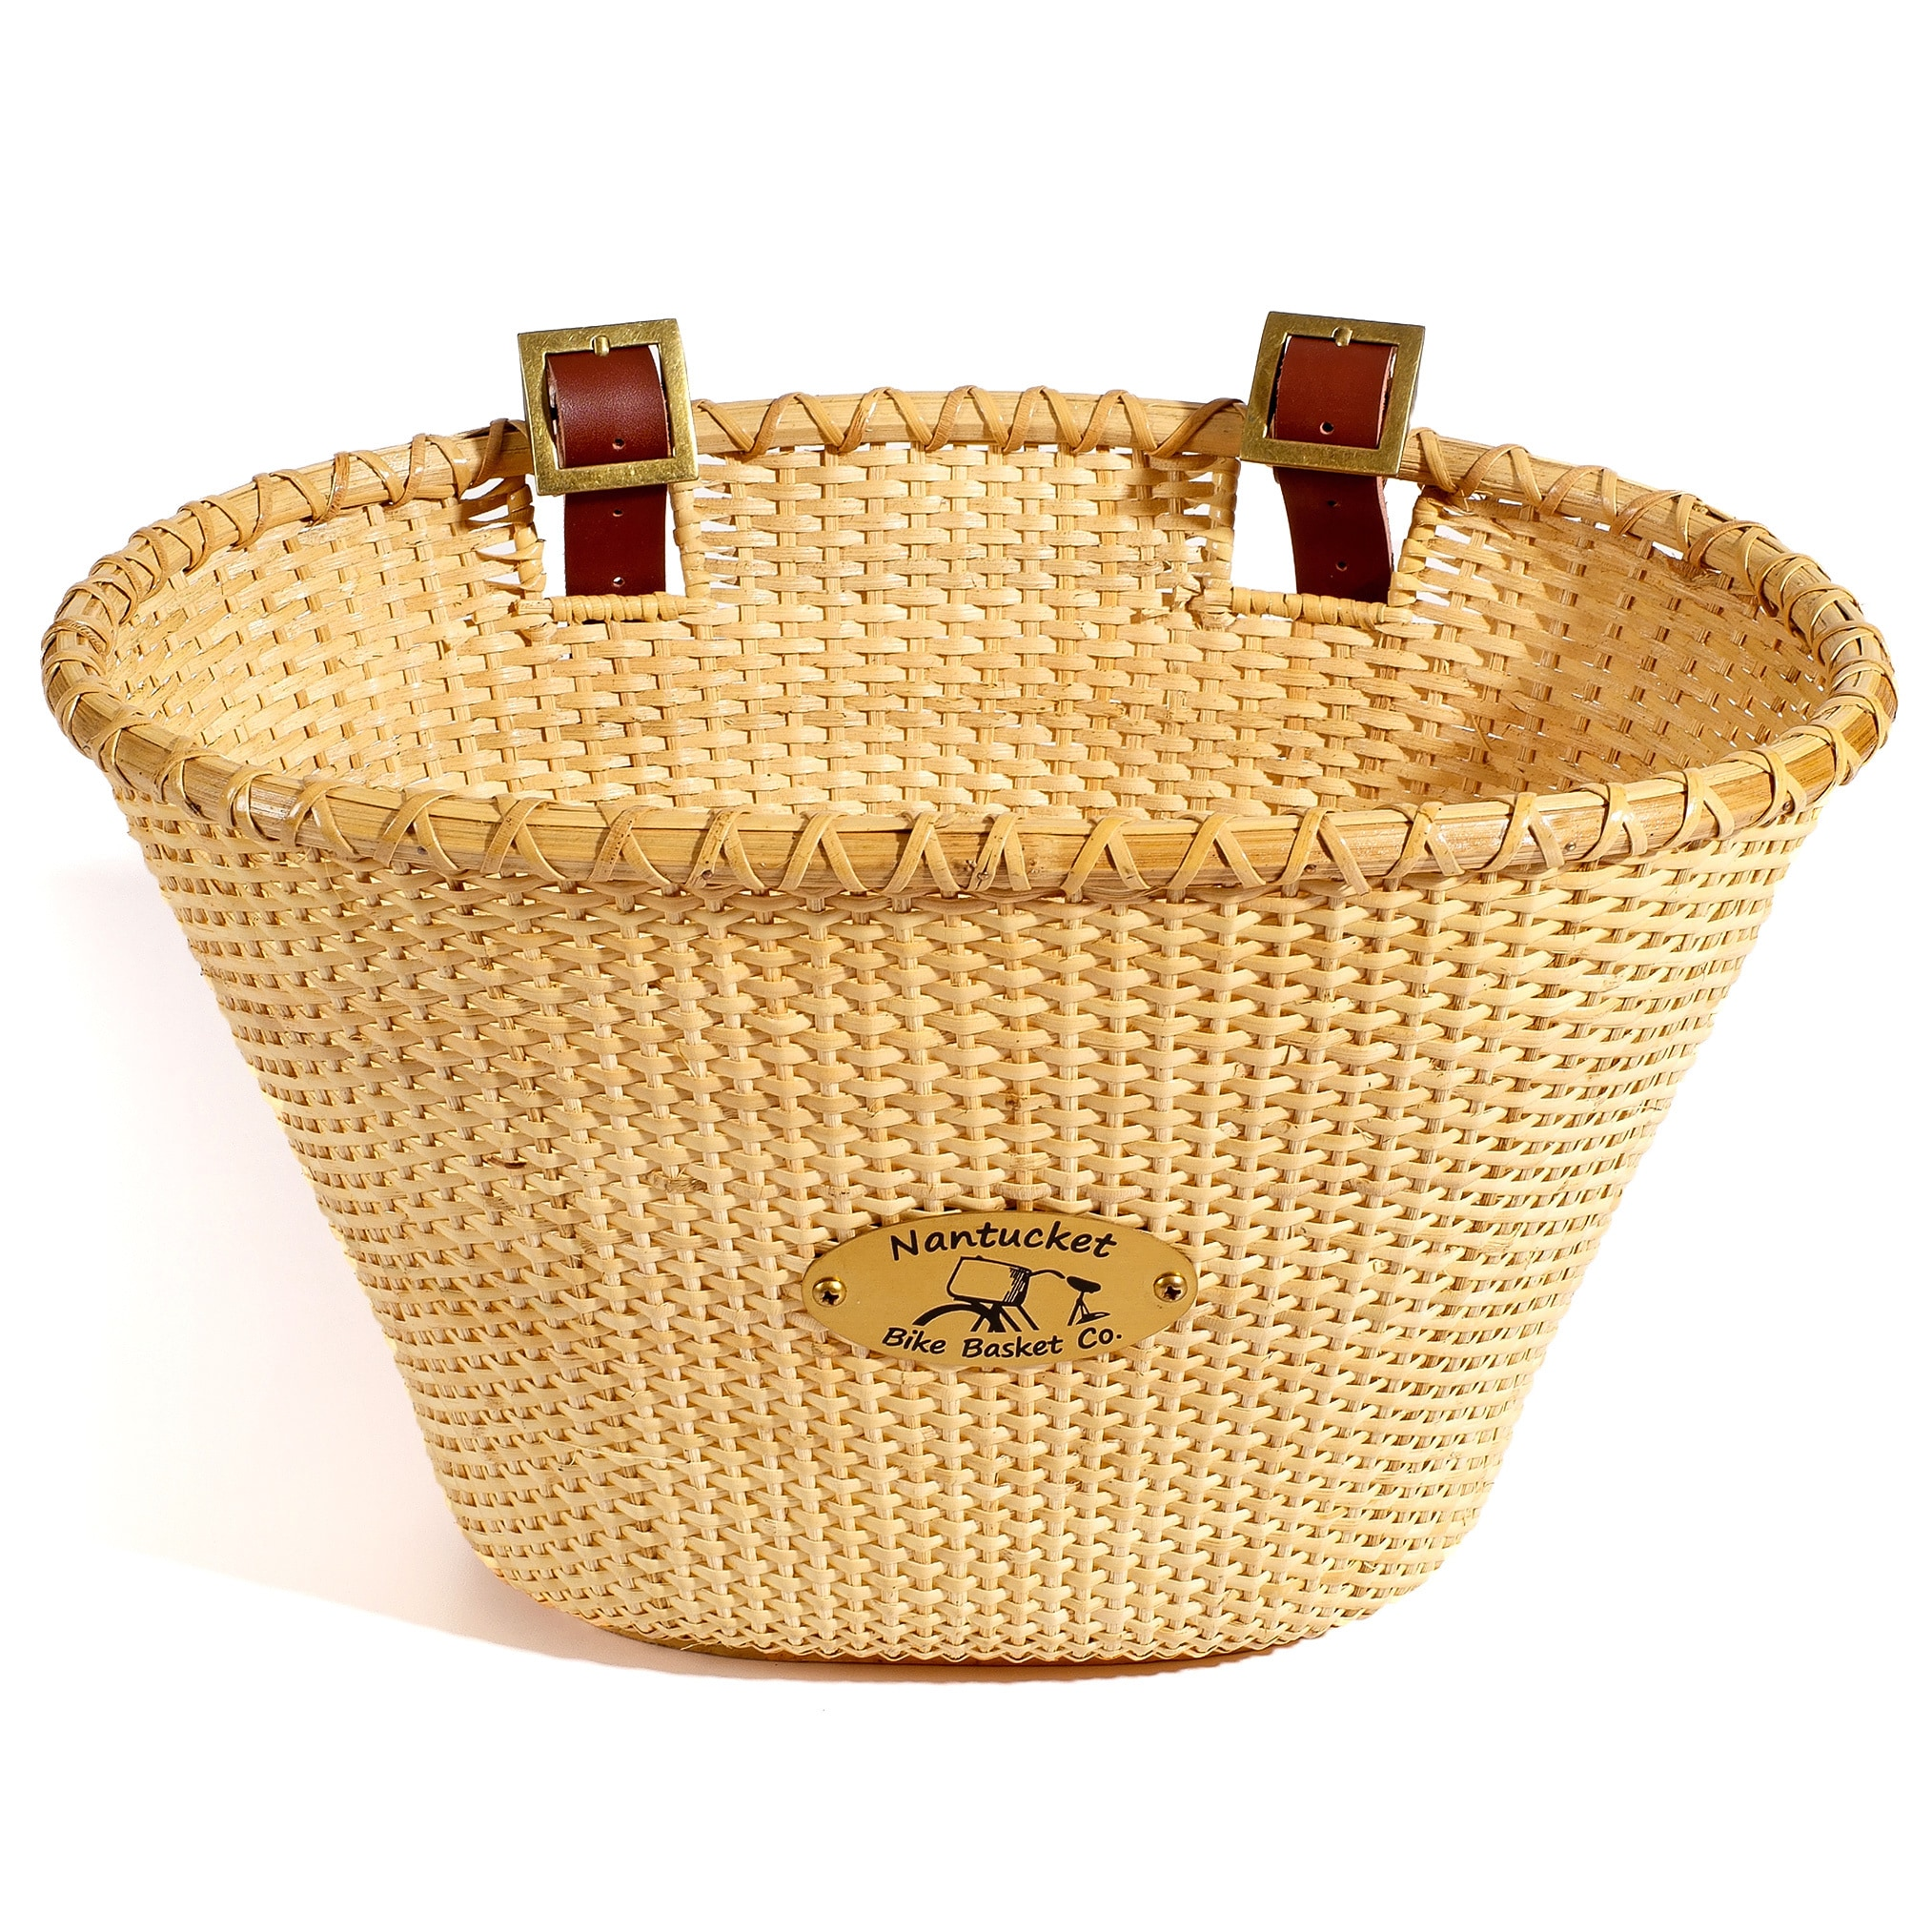 Nantucket Brand Bicycle Basket Co. Lightship Adult Oval N...